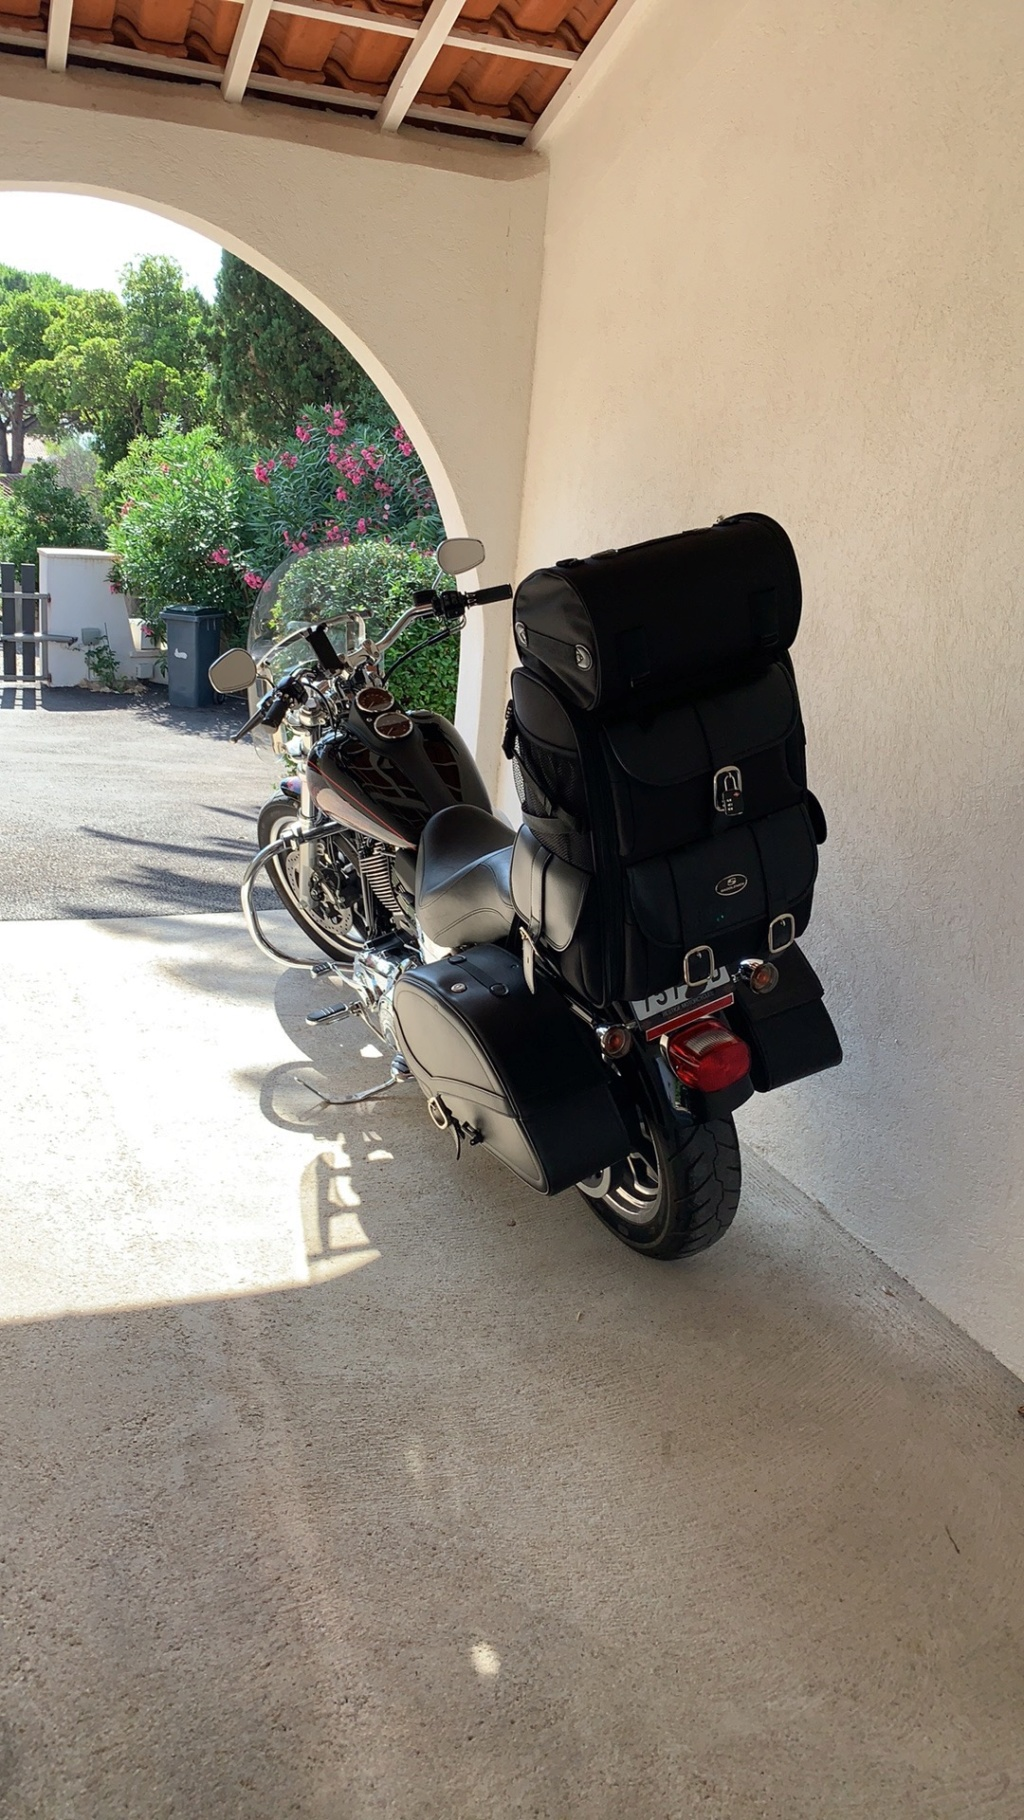 Quel sac pour Sissy bar ? - Page 2 Img_4012